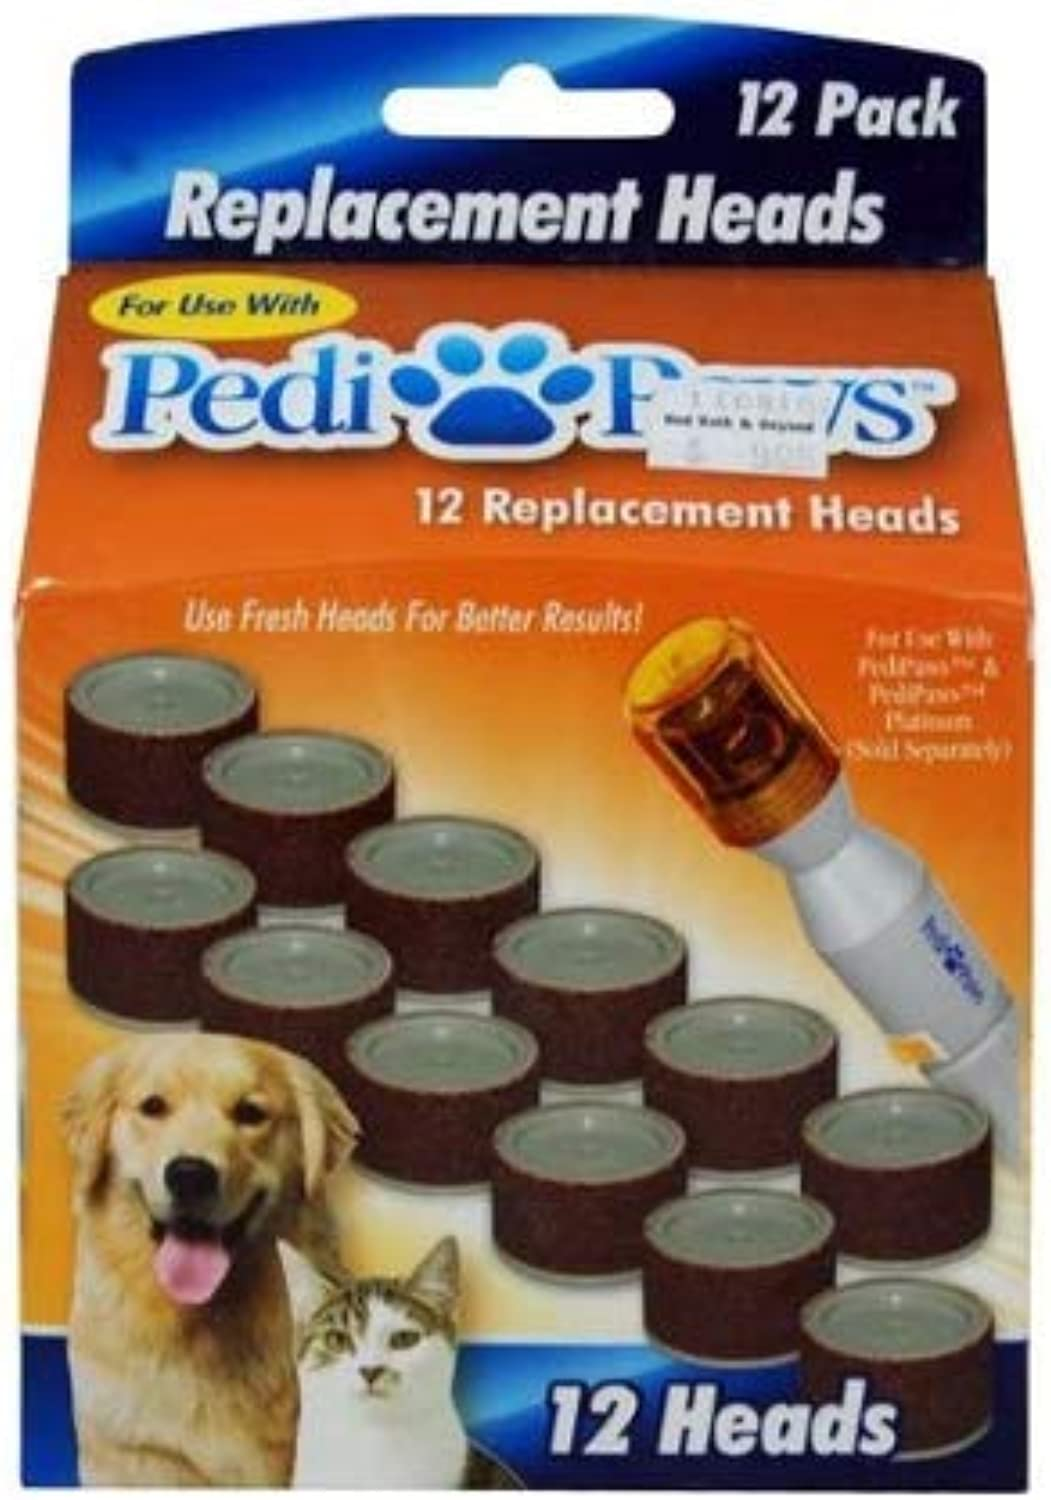 PediPaws Replacement Filing Heads 12 Replacement Heads As Seen on TV.